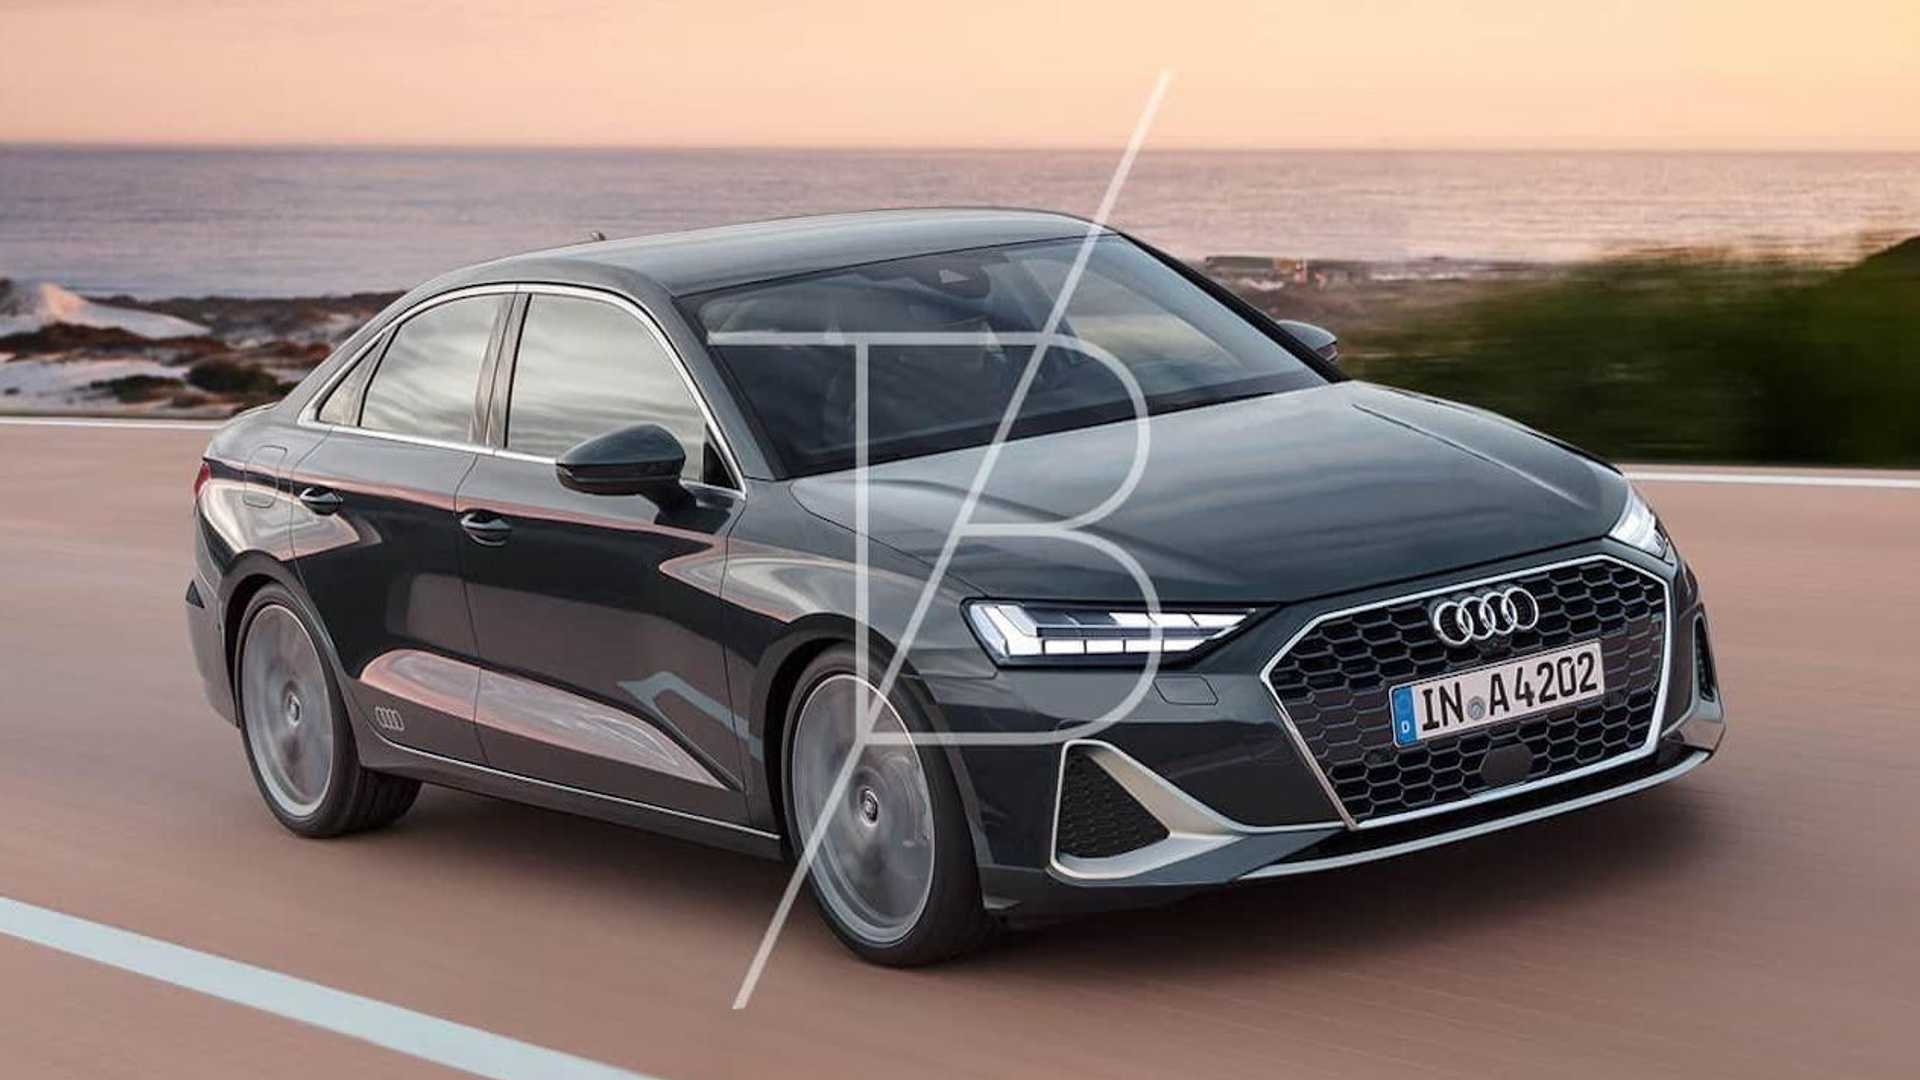 all-new-2023-audi-a4-wont-go-full-ev-just-yet-will-stick-with-gasoline-and-diesel-power-171426_1.jpg